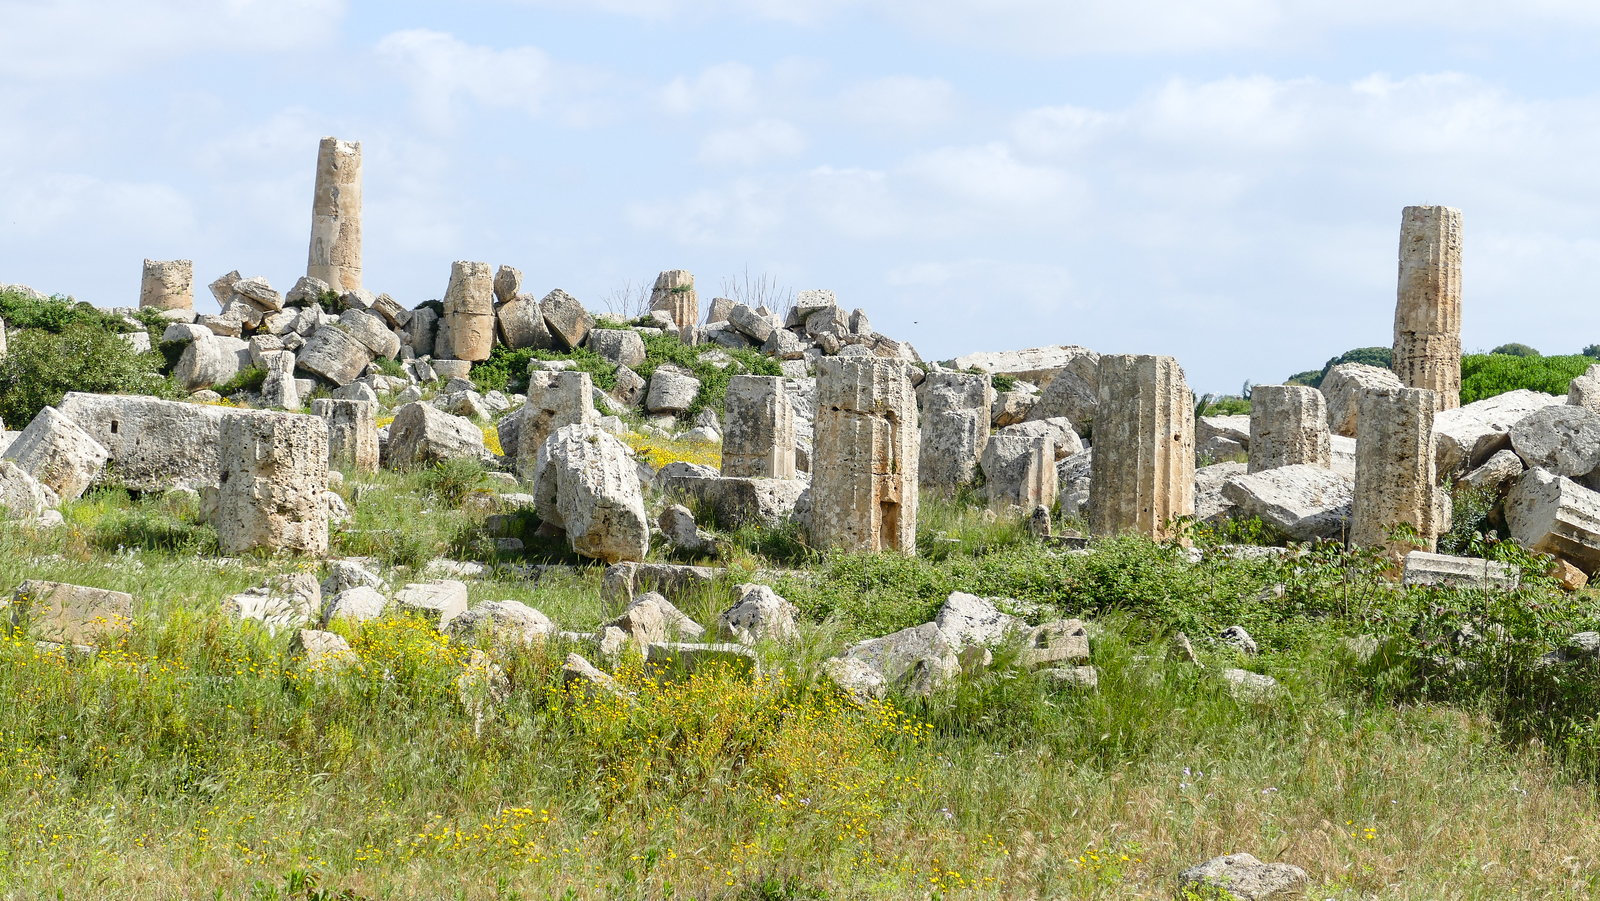 The temple ruins at Selinunte, Sicily.